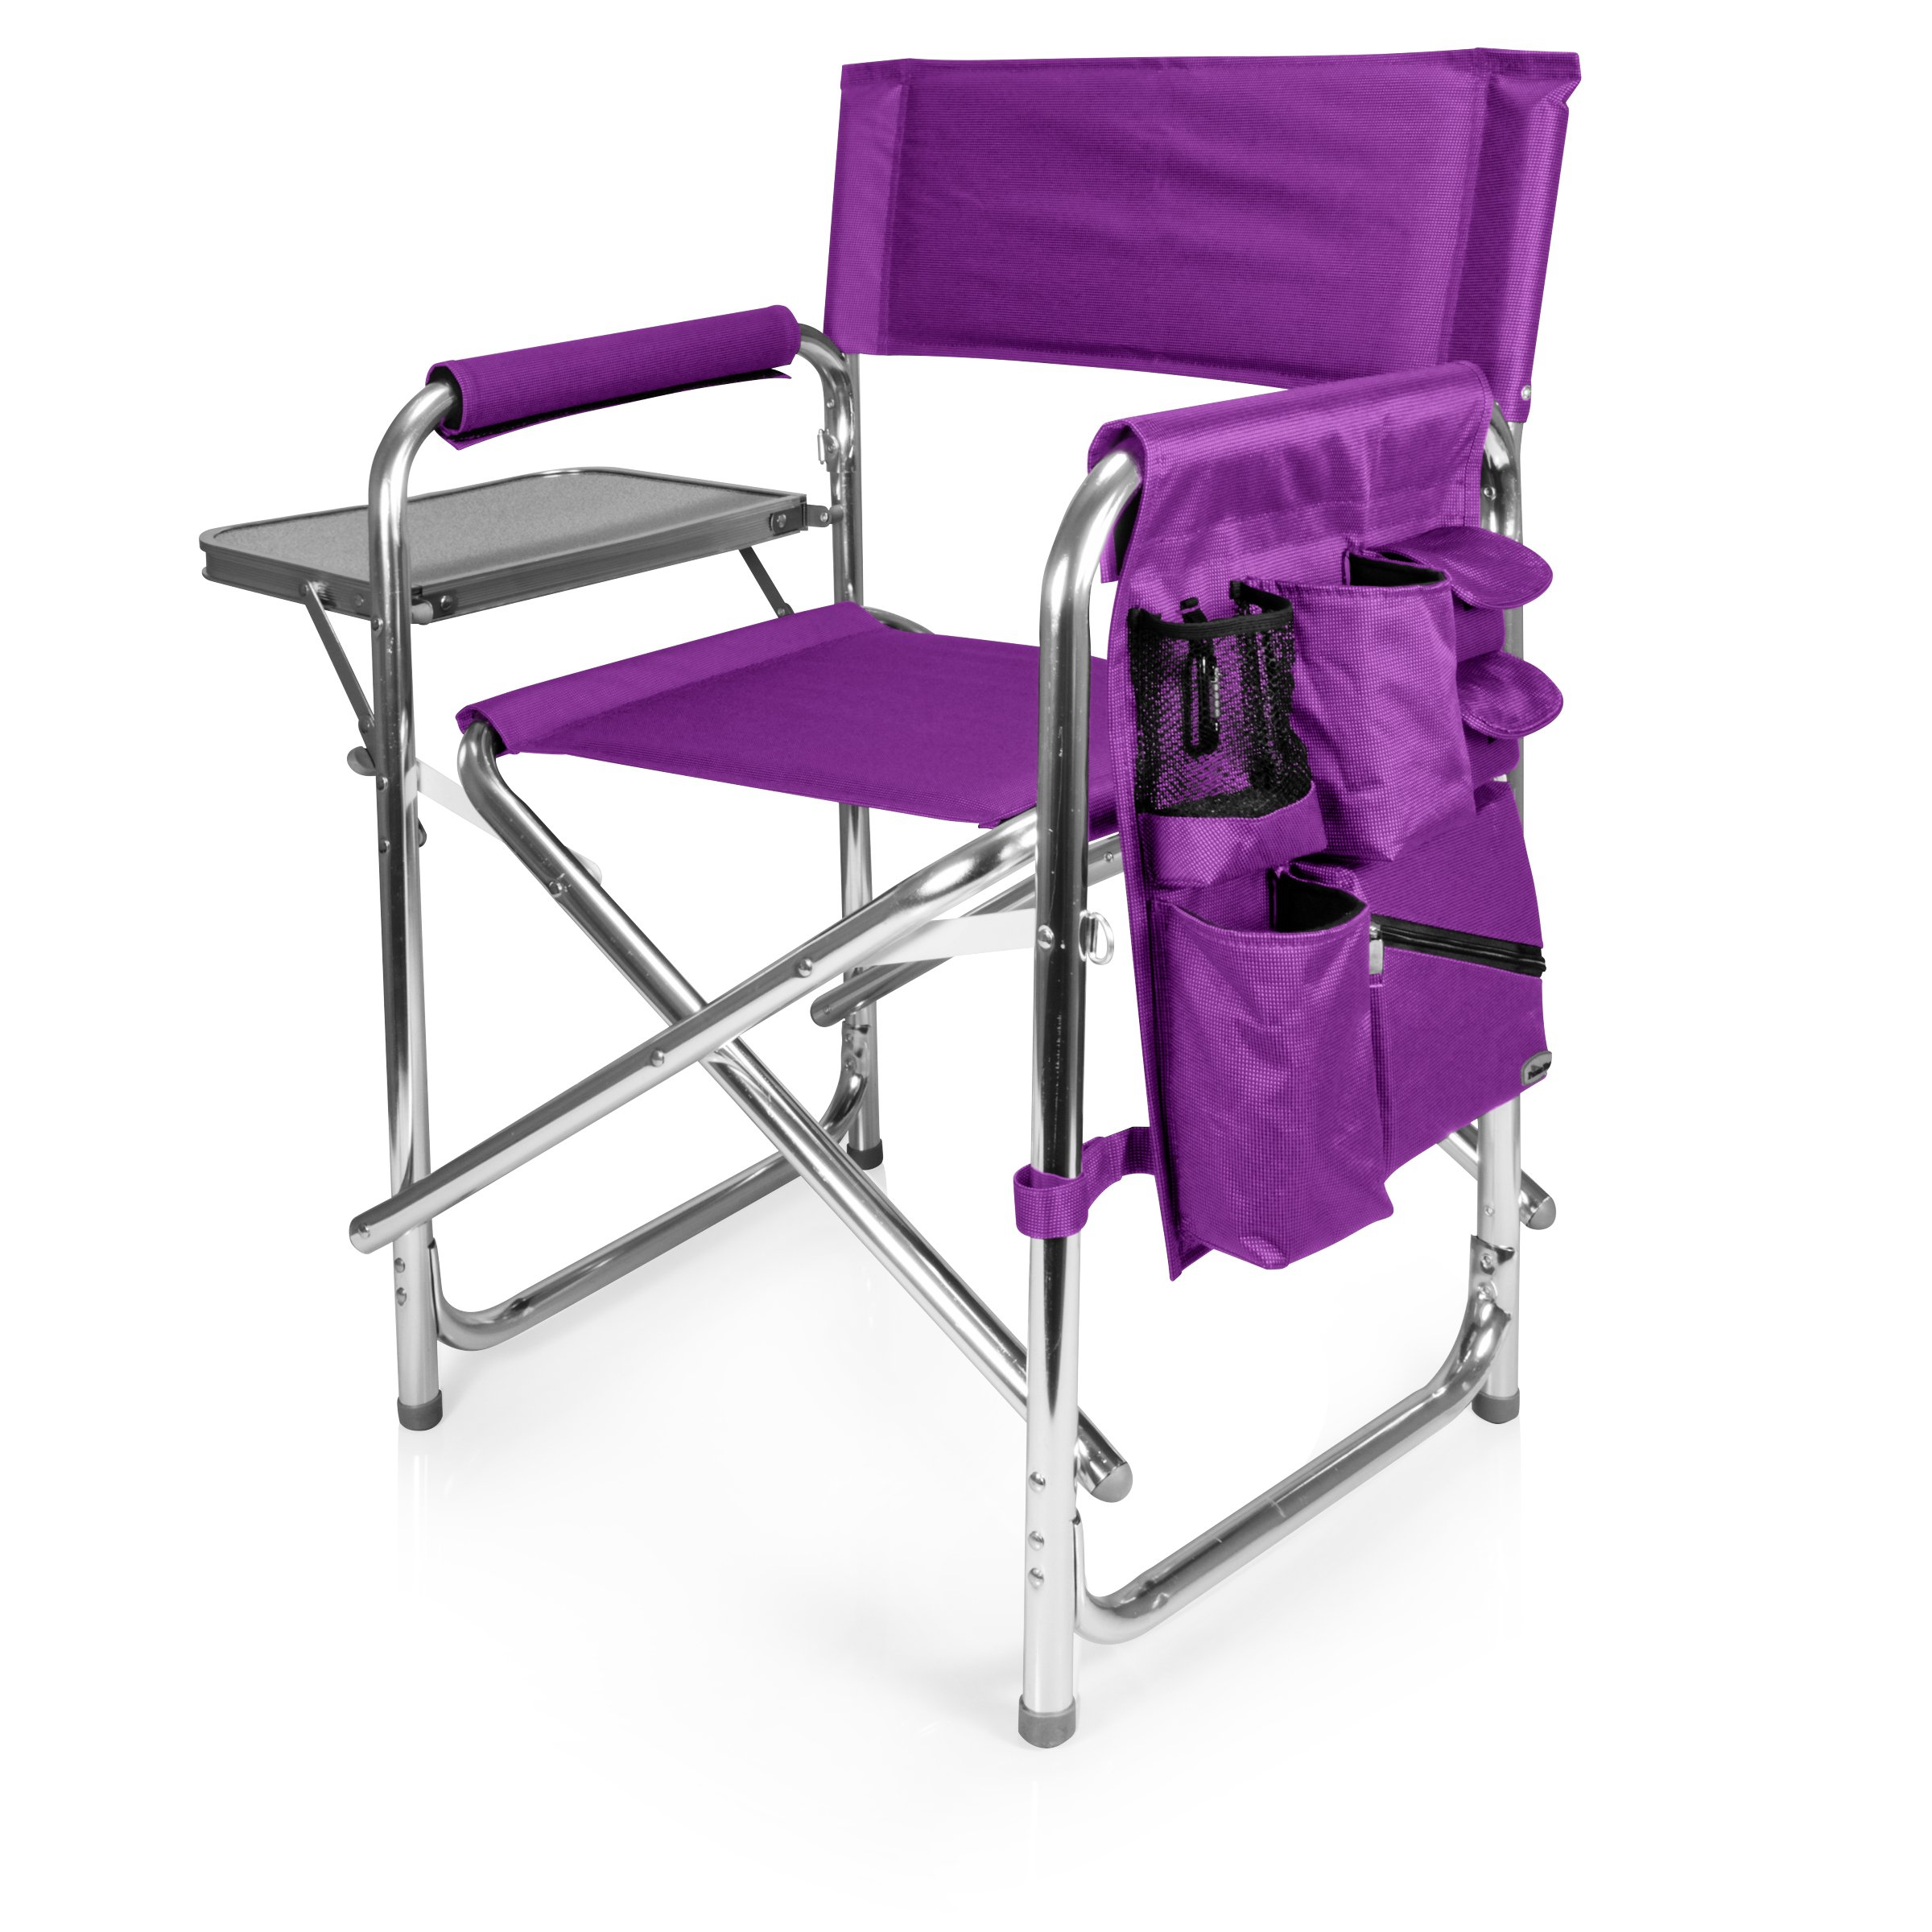 Personalized Embroidered Sports Director Chair with Side Table and Pocket- Black by Picnic Time